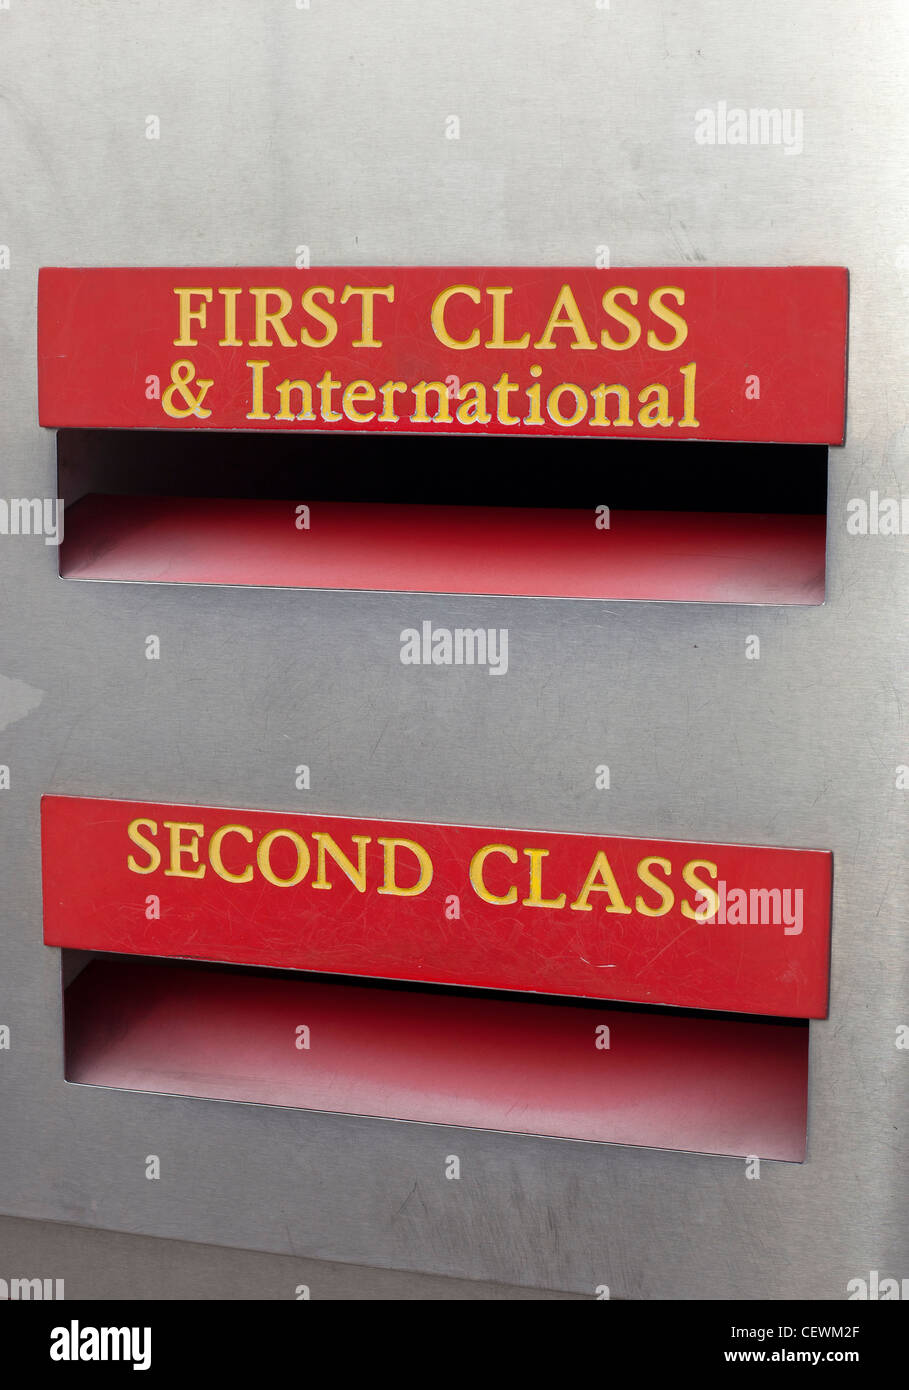 First Class and International and Second Class posting boxes close up. - Stock Image